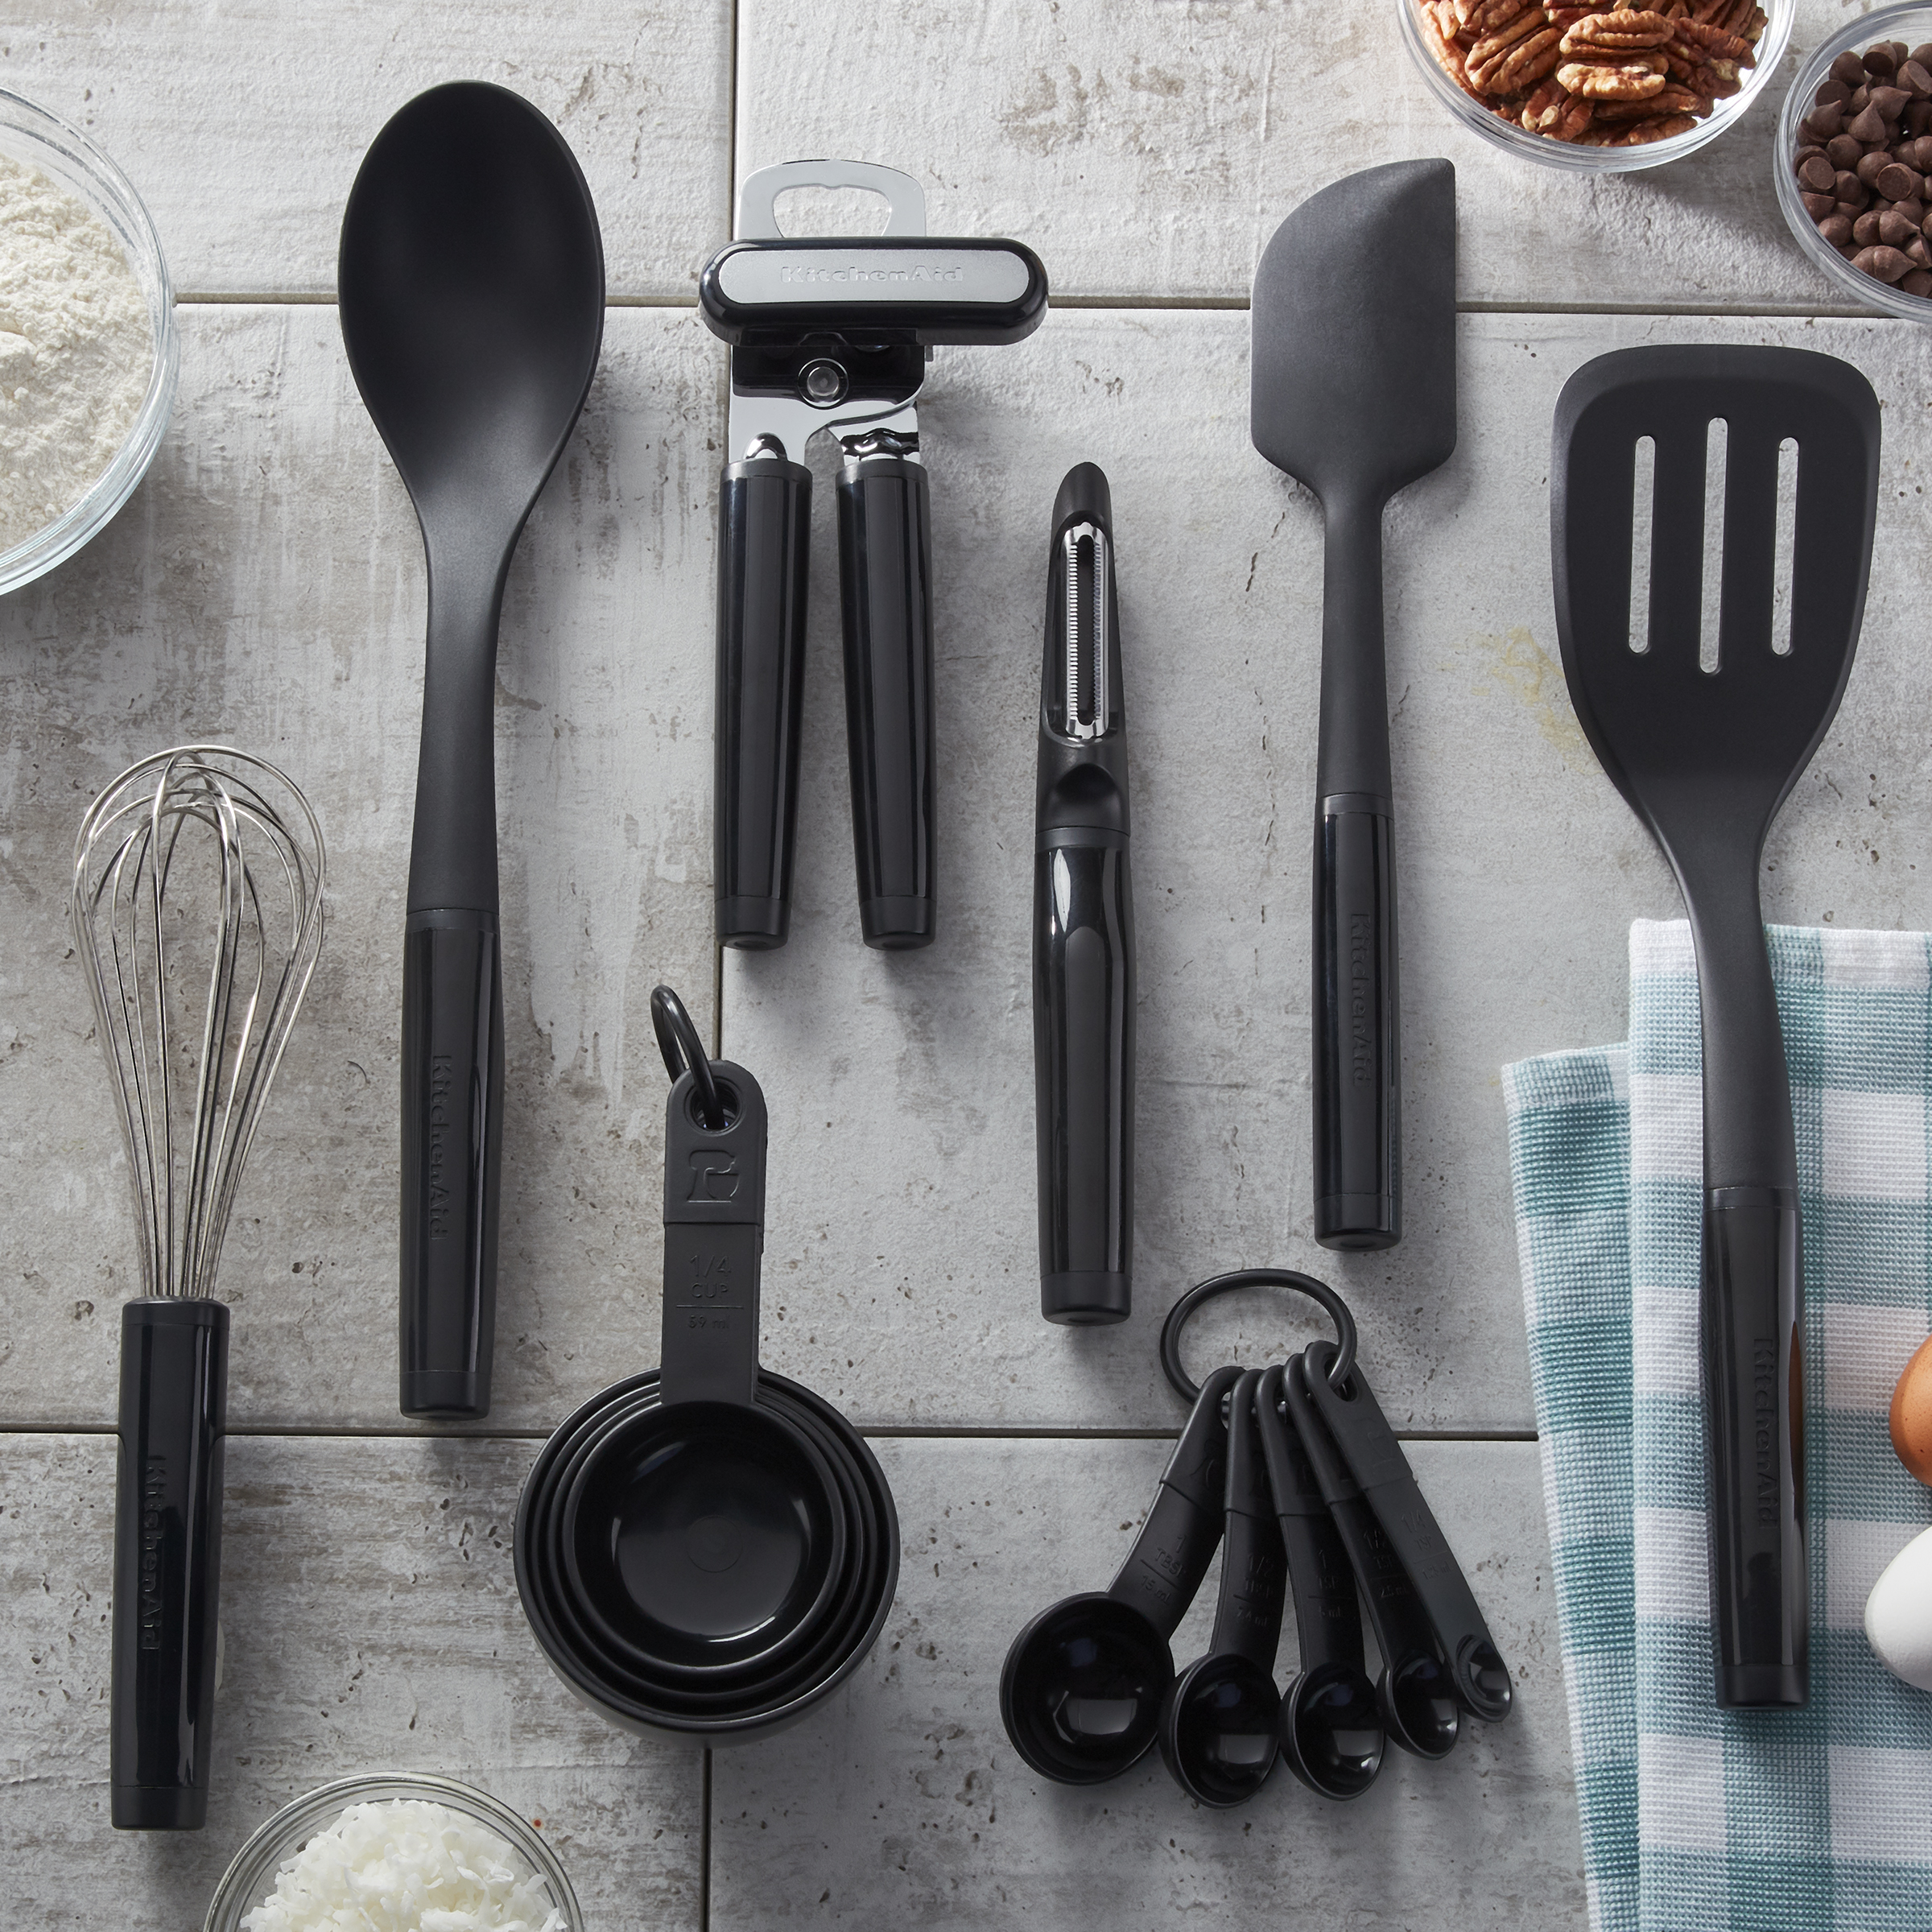 Kitchenaid Gadget Set, 15 Piece